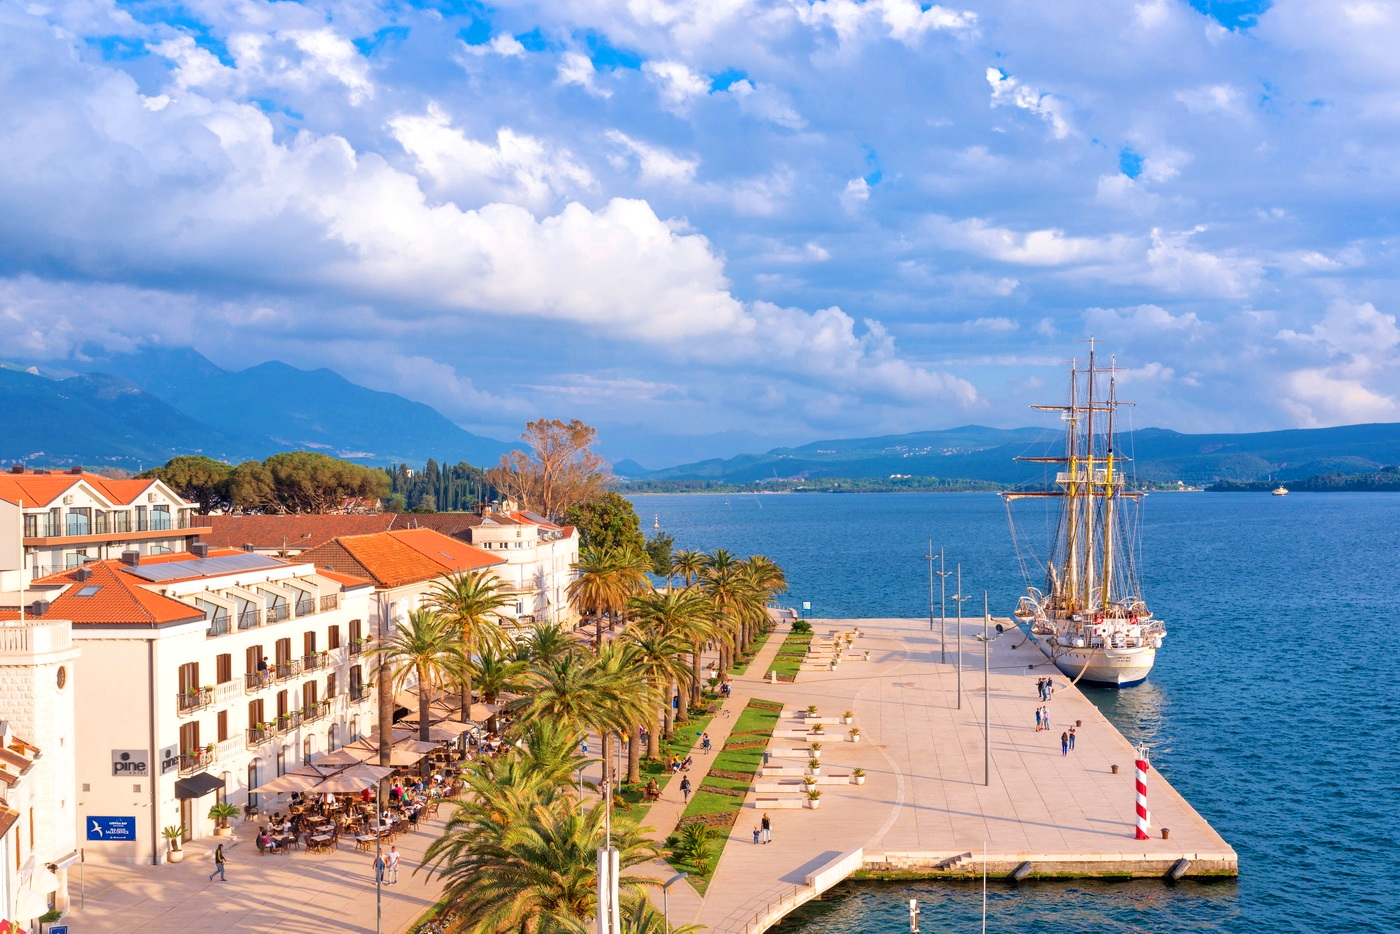 Waterfront square Pine - Tivat downtown